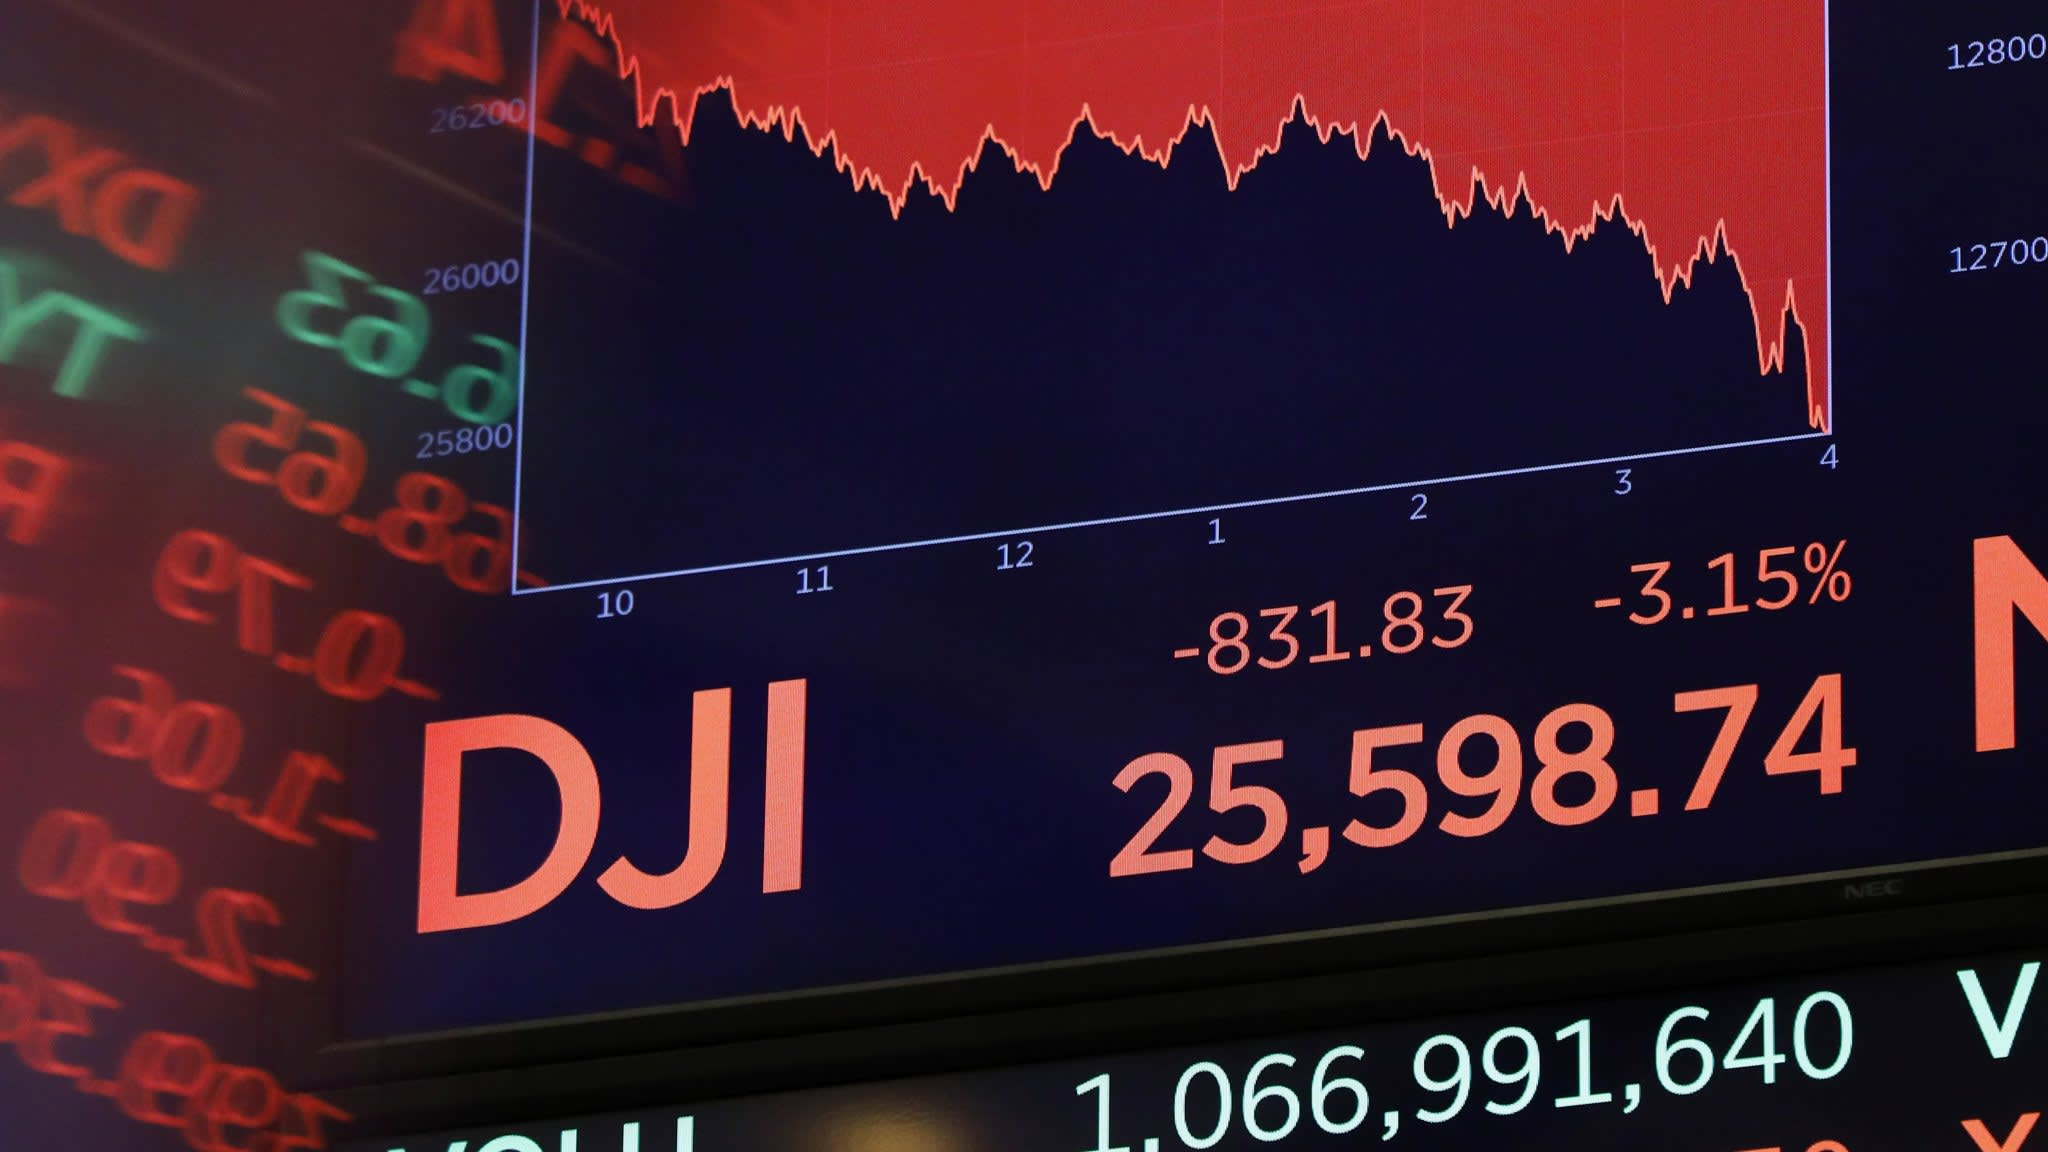 Asian shares tumble as global sell-off spreads